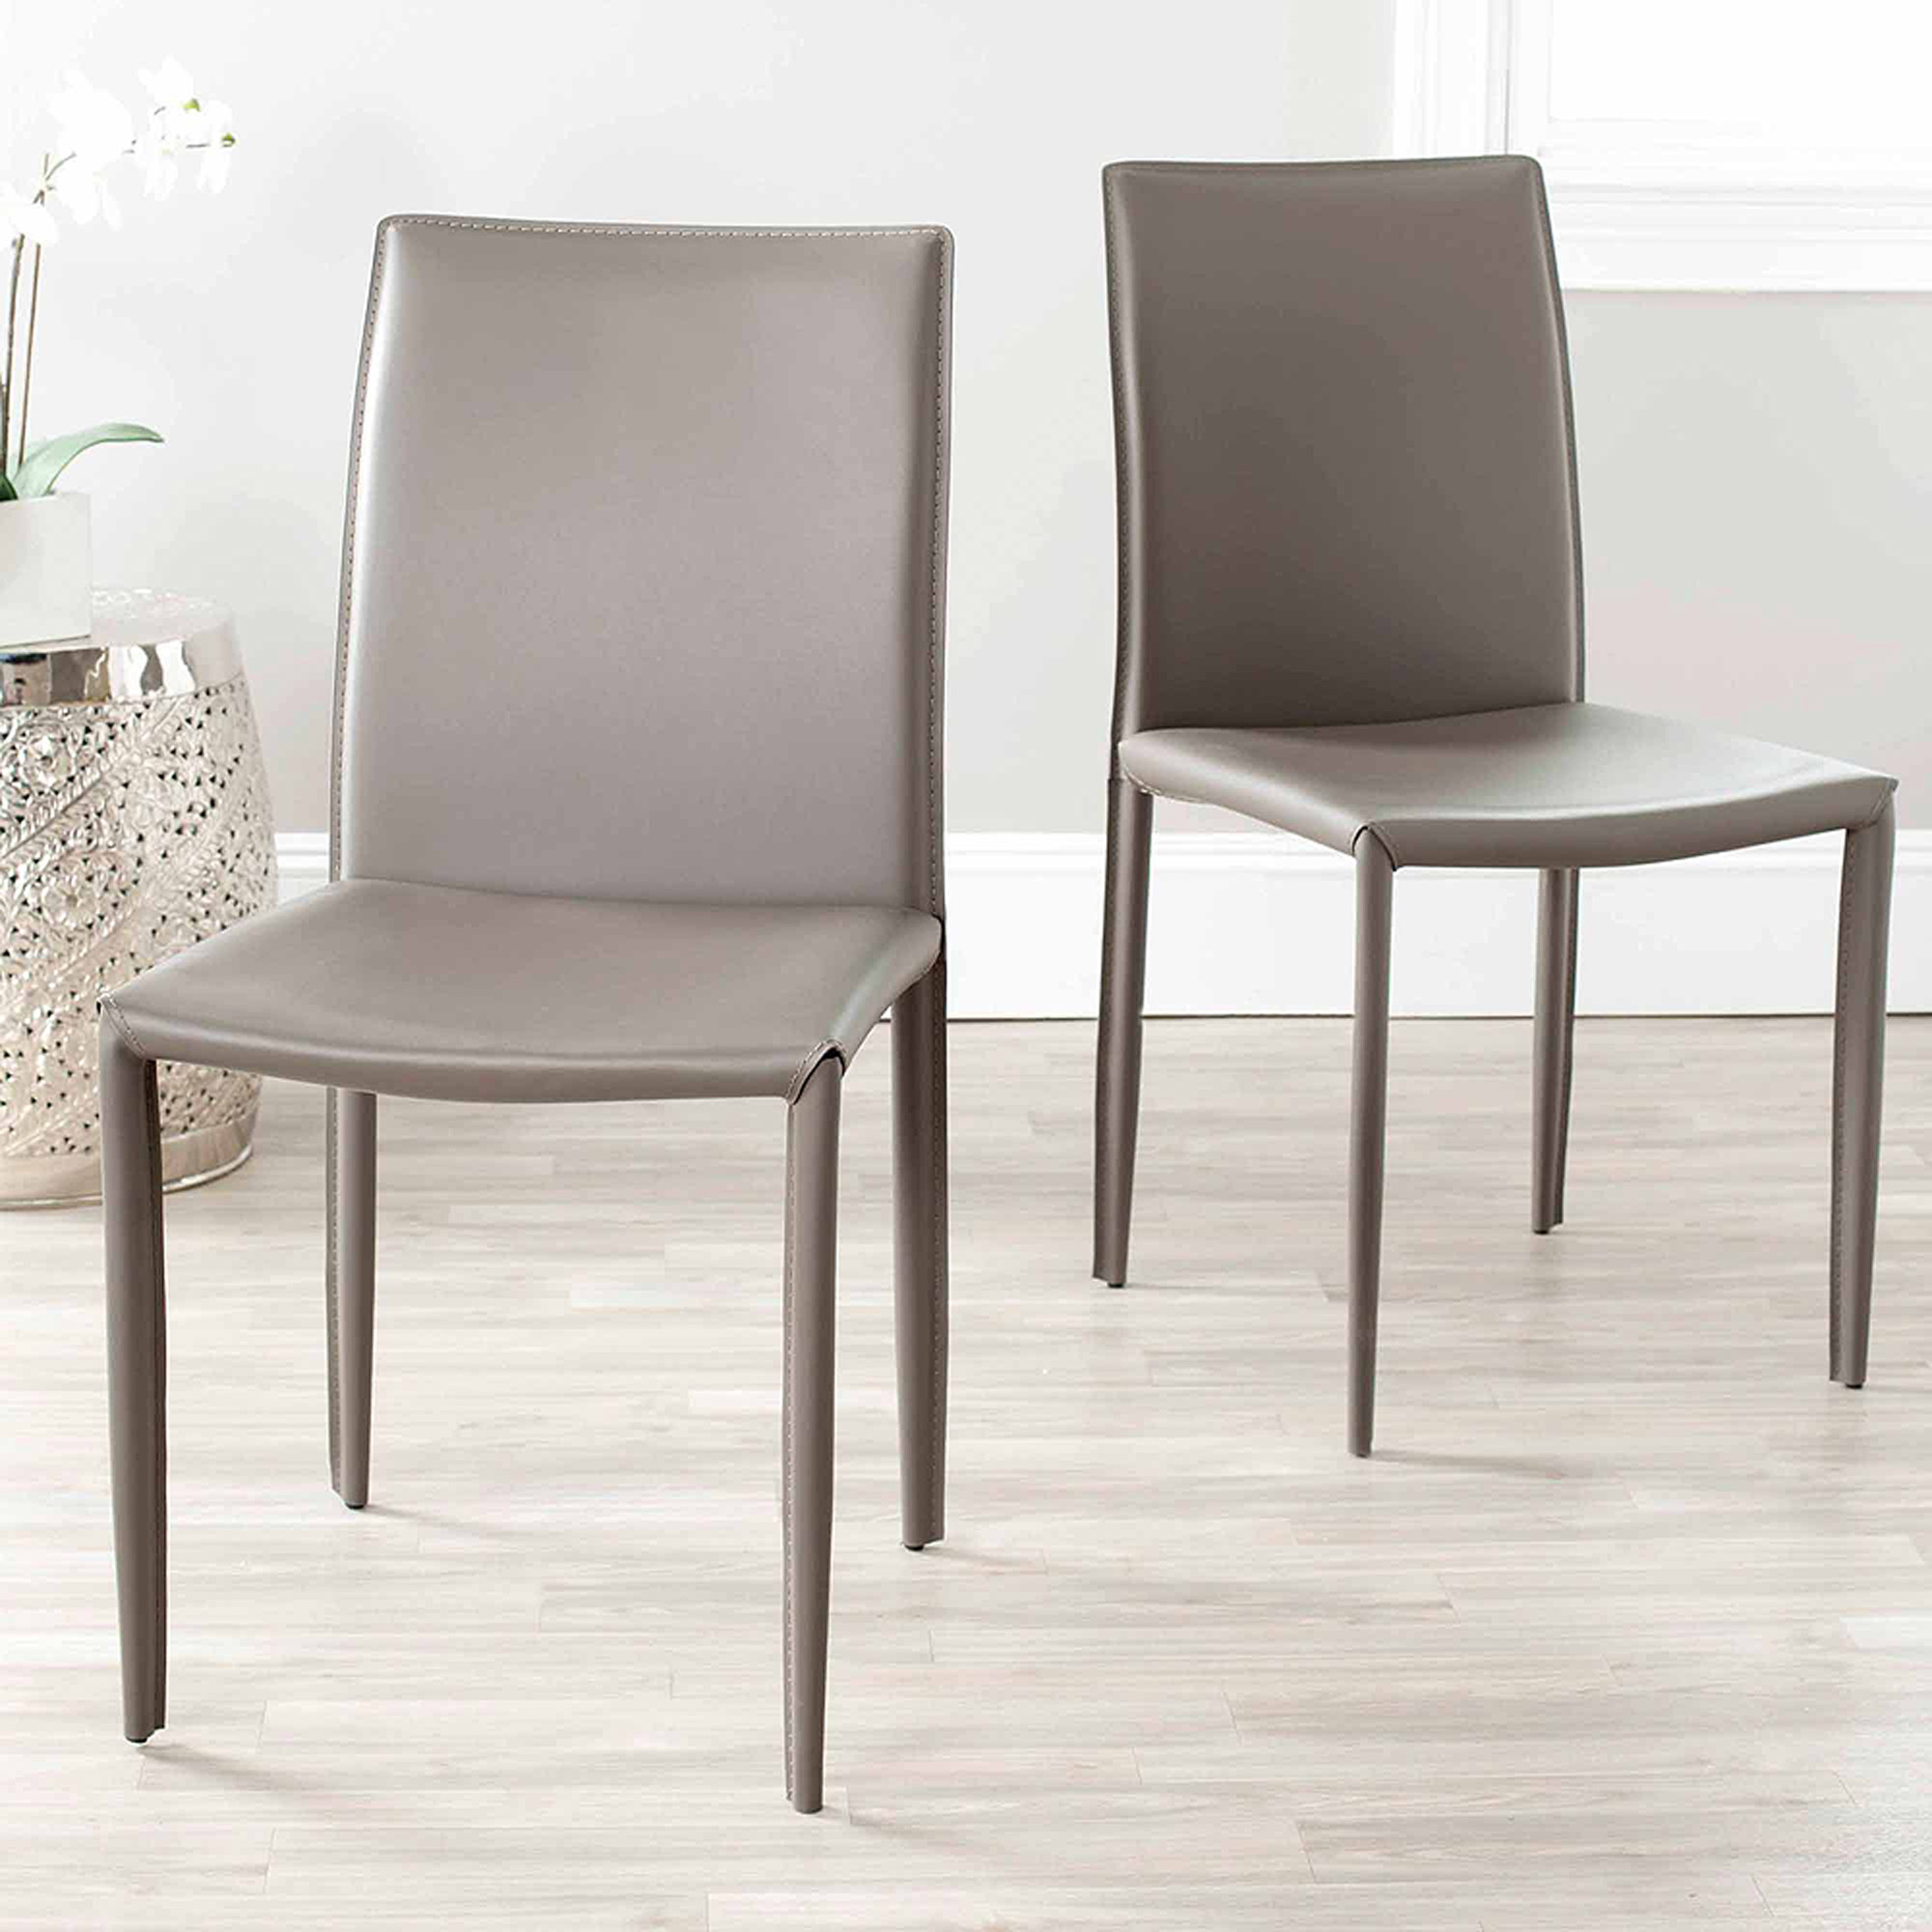 Safavieh Karna Dining Chair Set of 2 Walmart